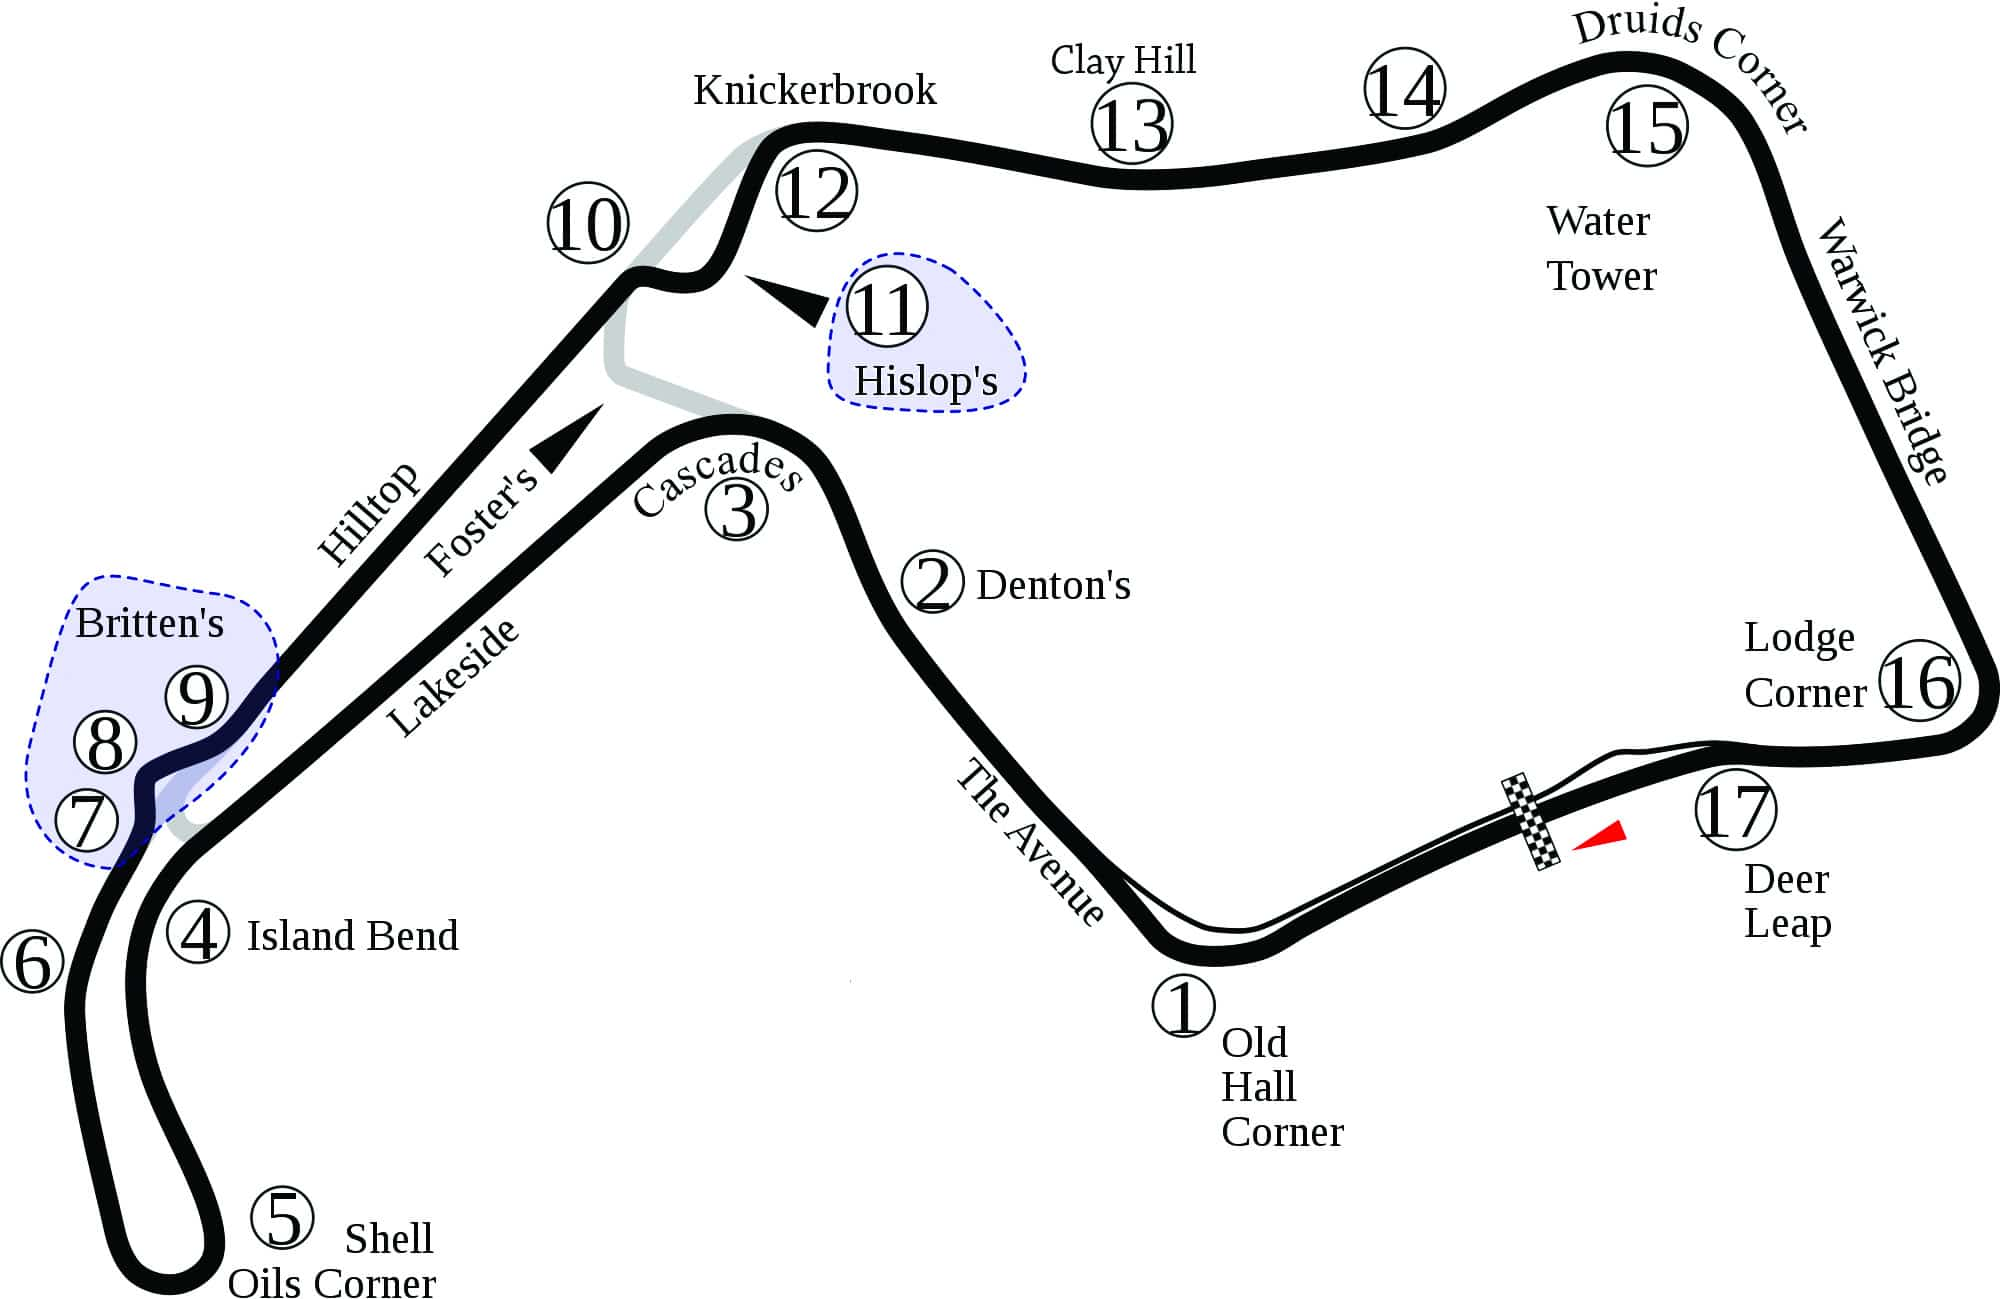 The definitive track guide to oulton park circuit driver 61.